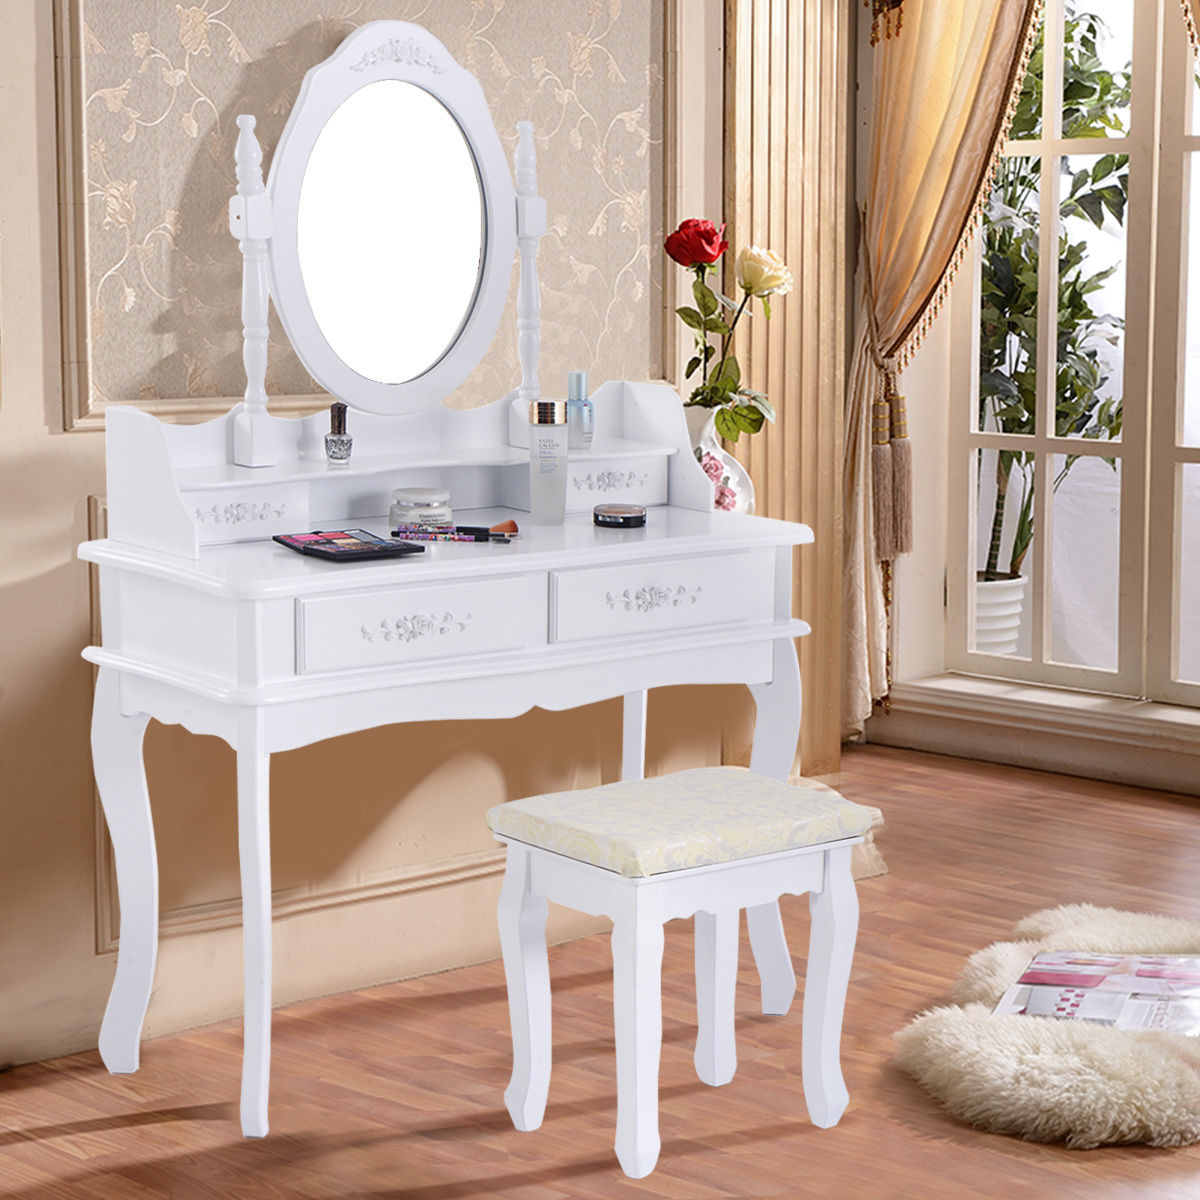 Costway White Vanity Jewelry Makeup Dressing Table Set Bathroom W/Stool 4  Drawer Mirror Wood